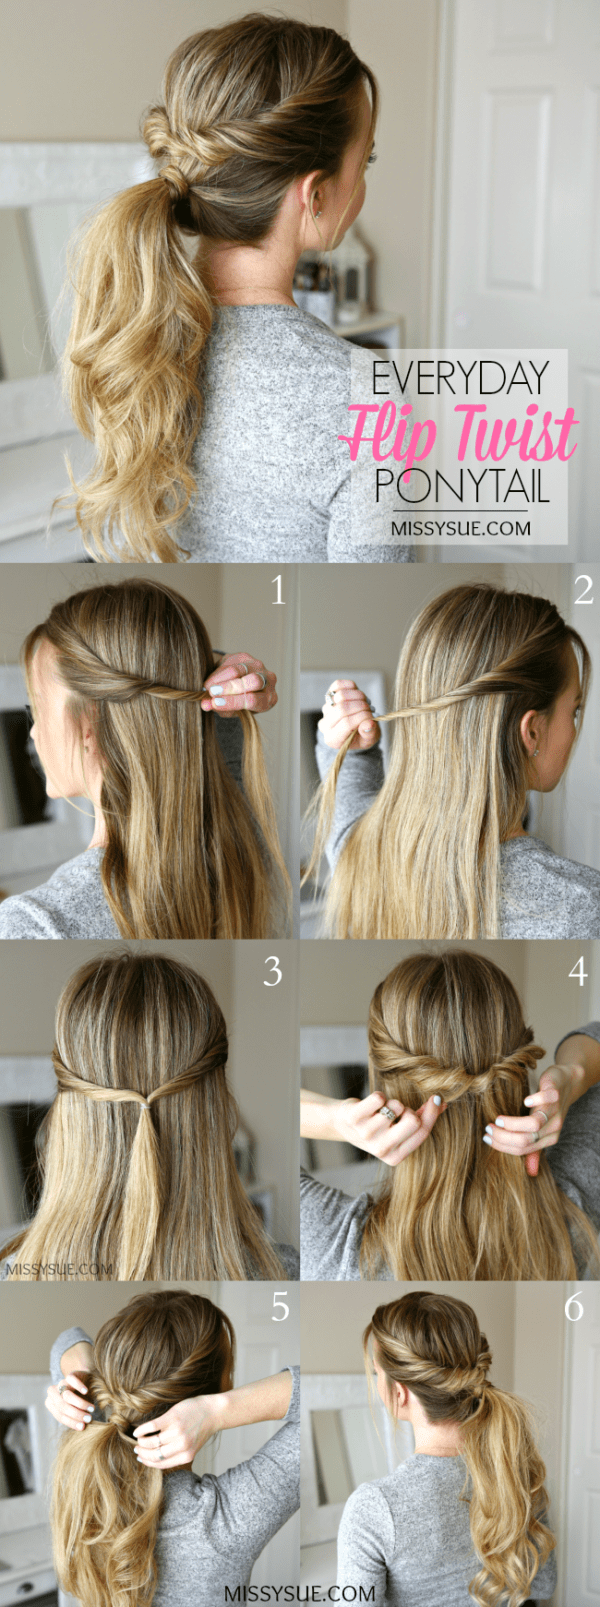 Easy hairstyles tutorials for busy women that will take you less